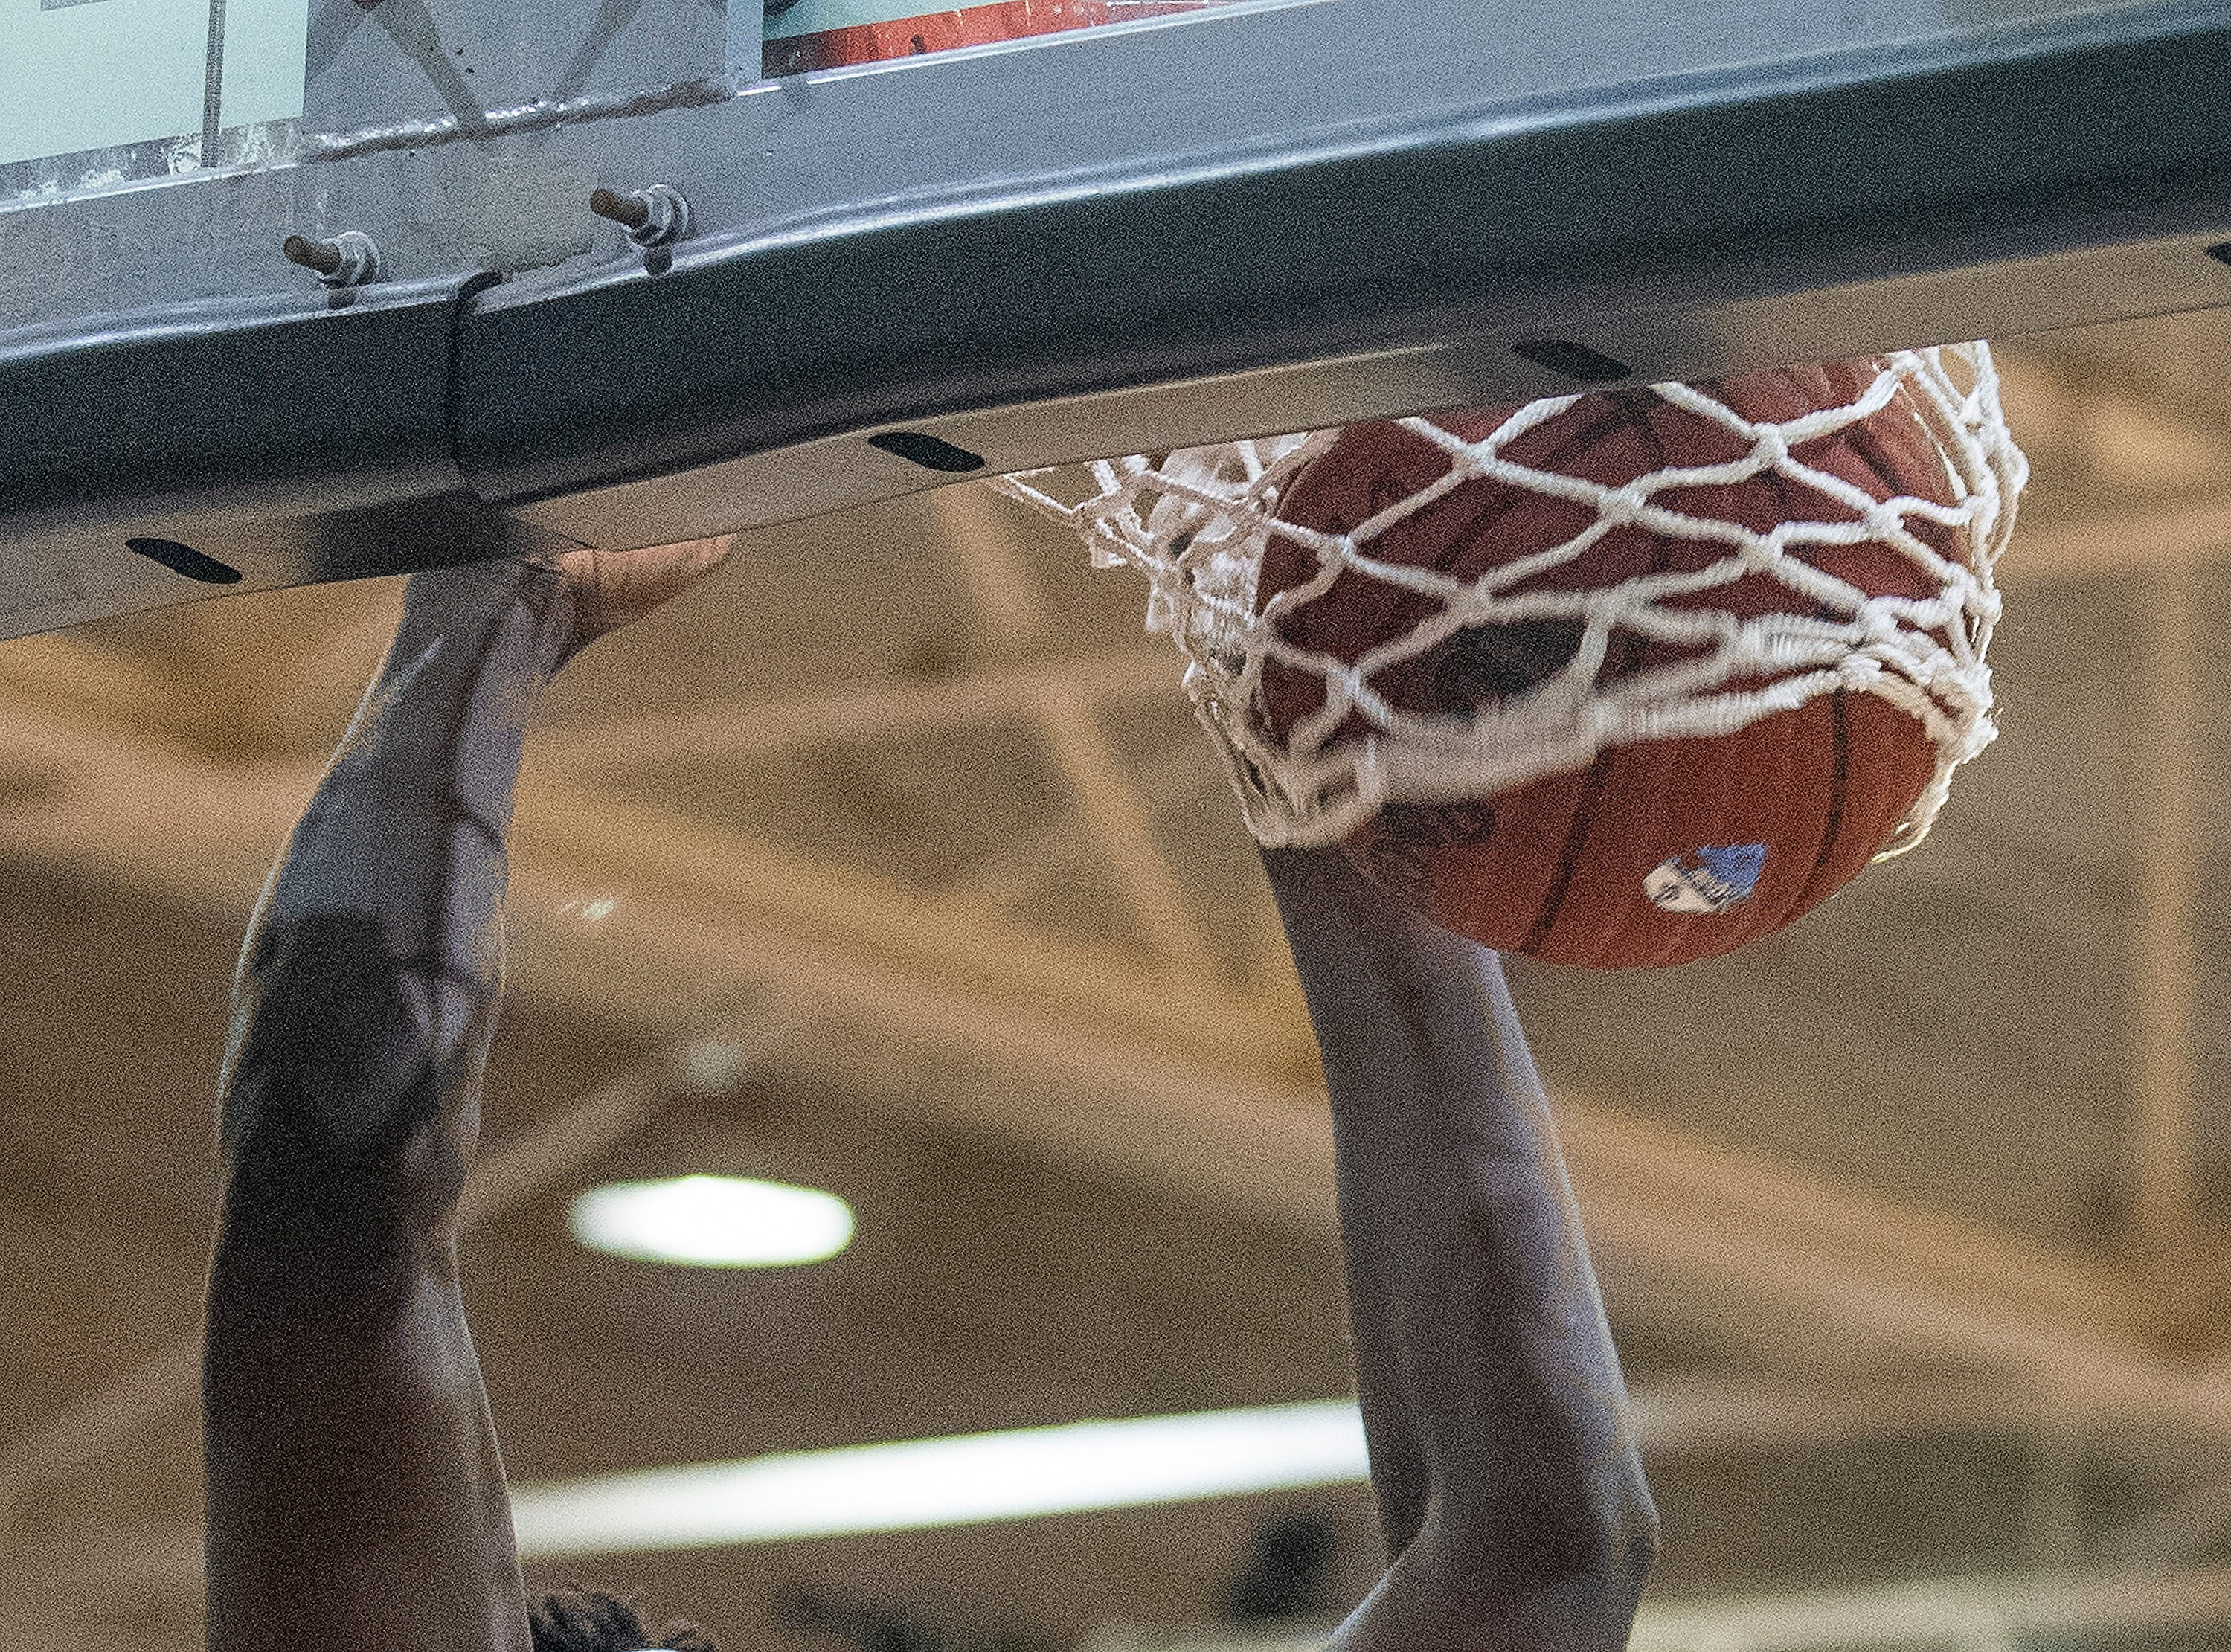 Lanier's Antwan Burnett (11) dunks the ball against Northview at the Lanier campus in Montgomery, Ala., on Tuesday February 12, 2019.